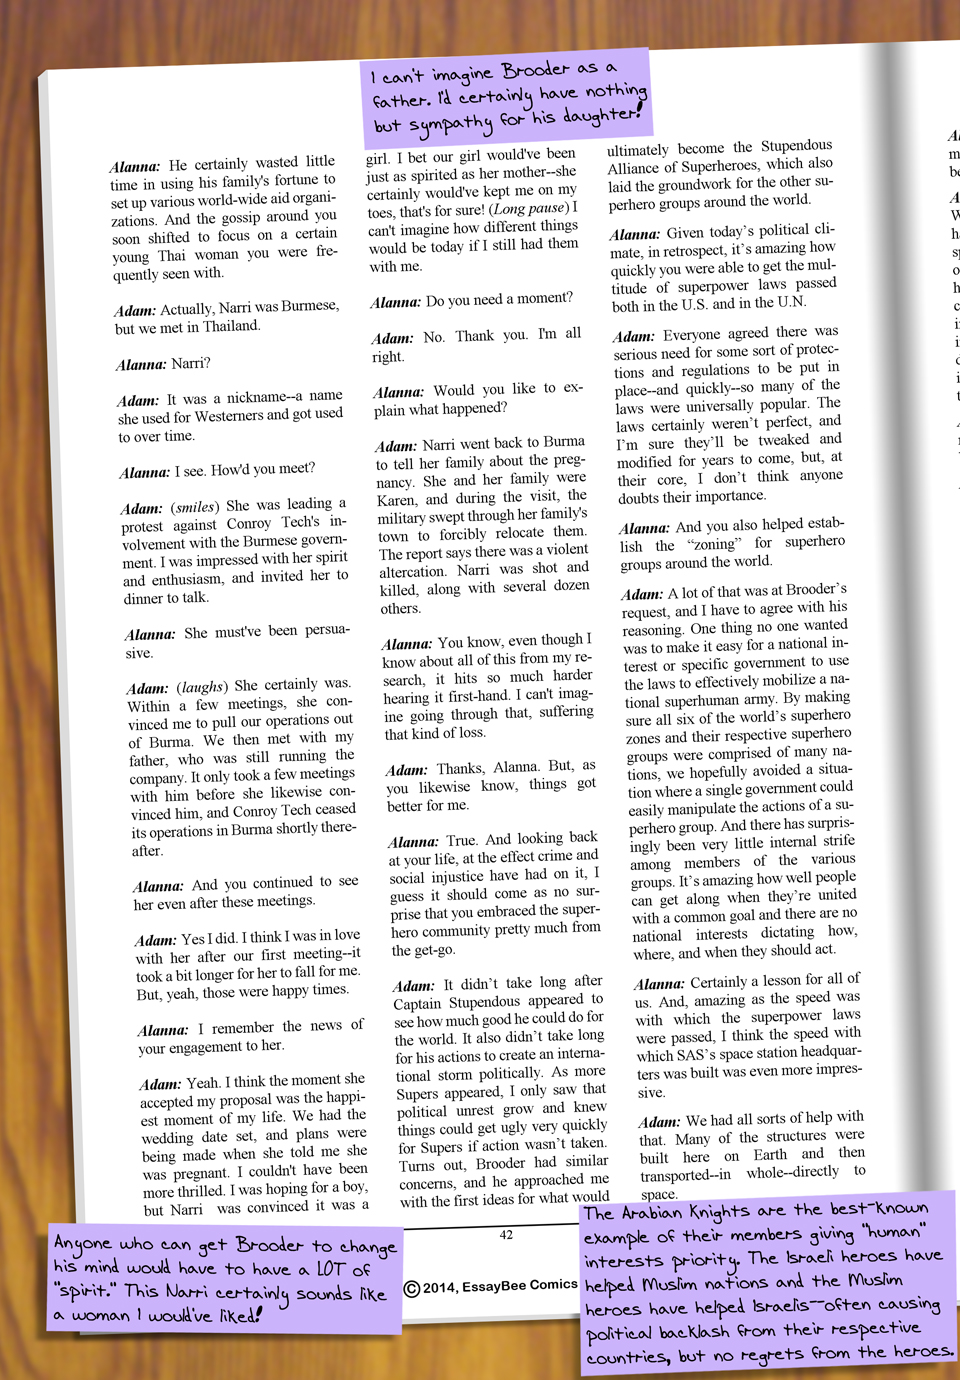 Interleude--Faces Magazine Interview 3 Page 5